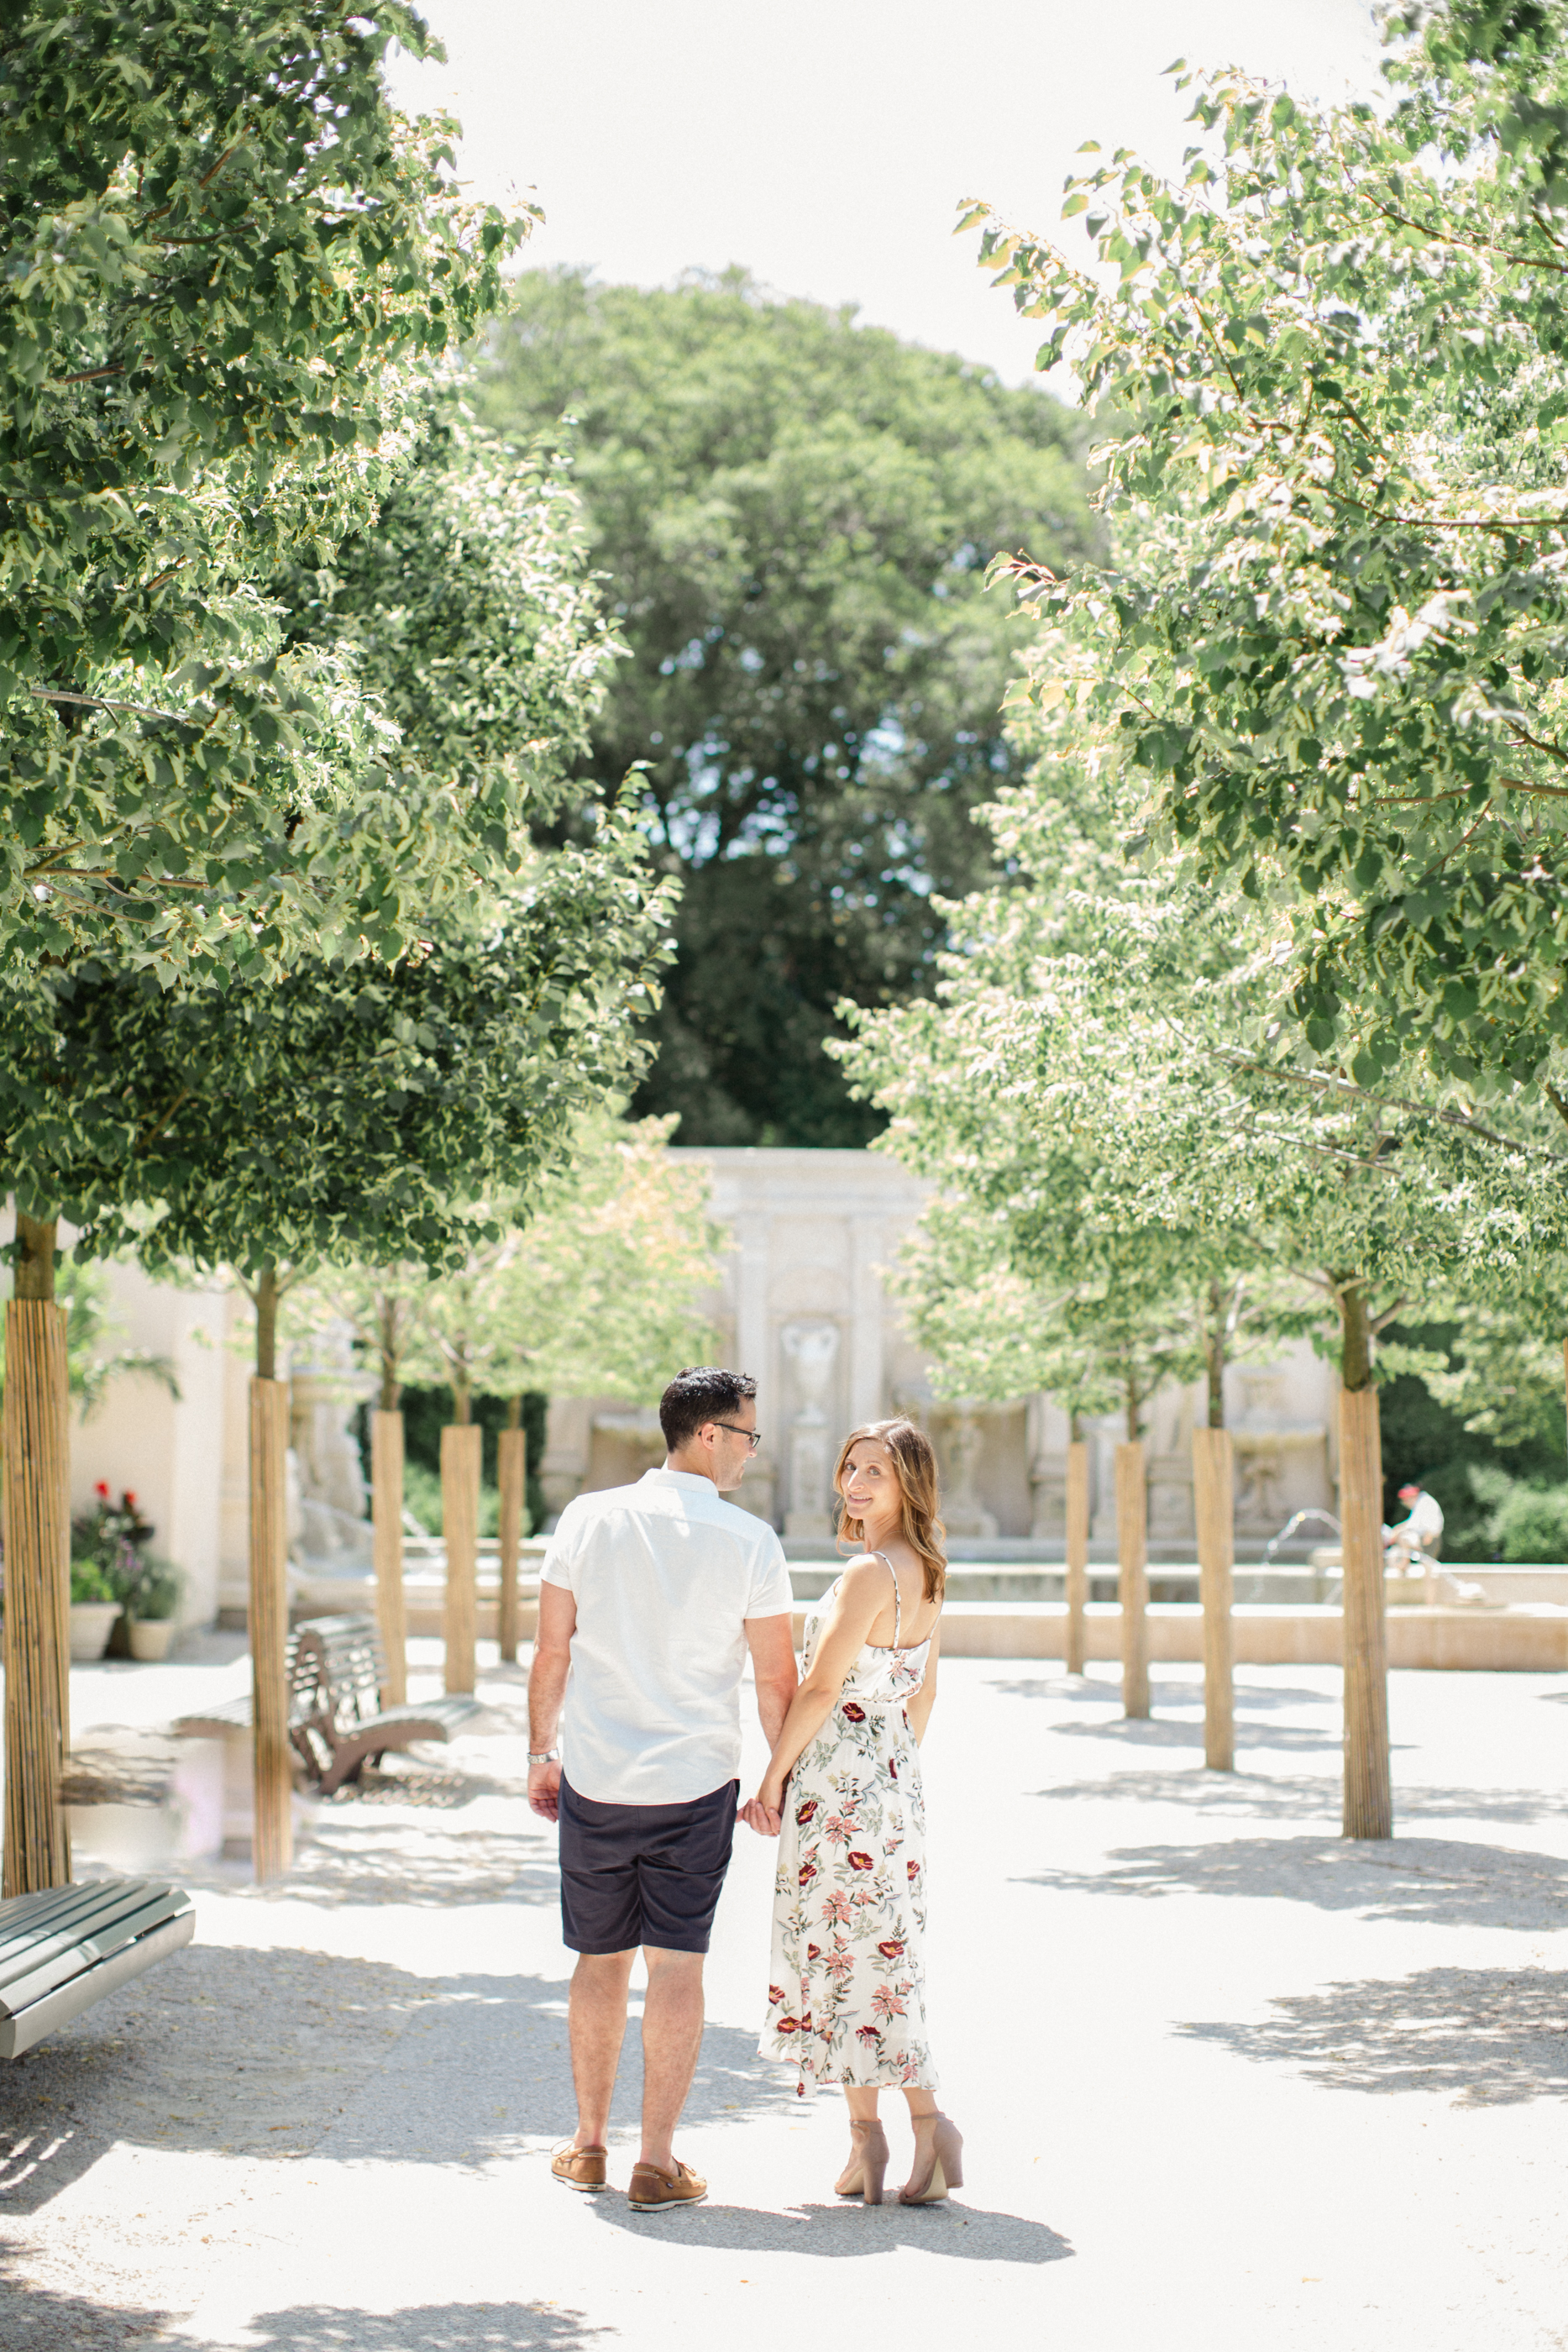 Longwood Gardens Engagement Session Photos_JDP-18.jpg